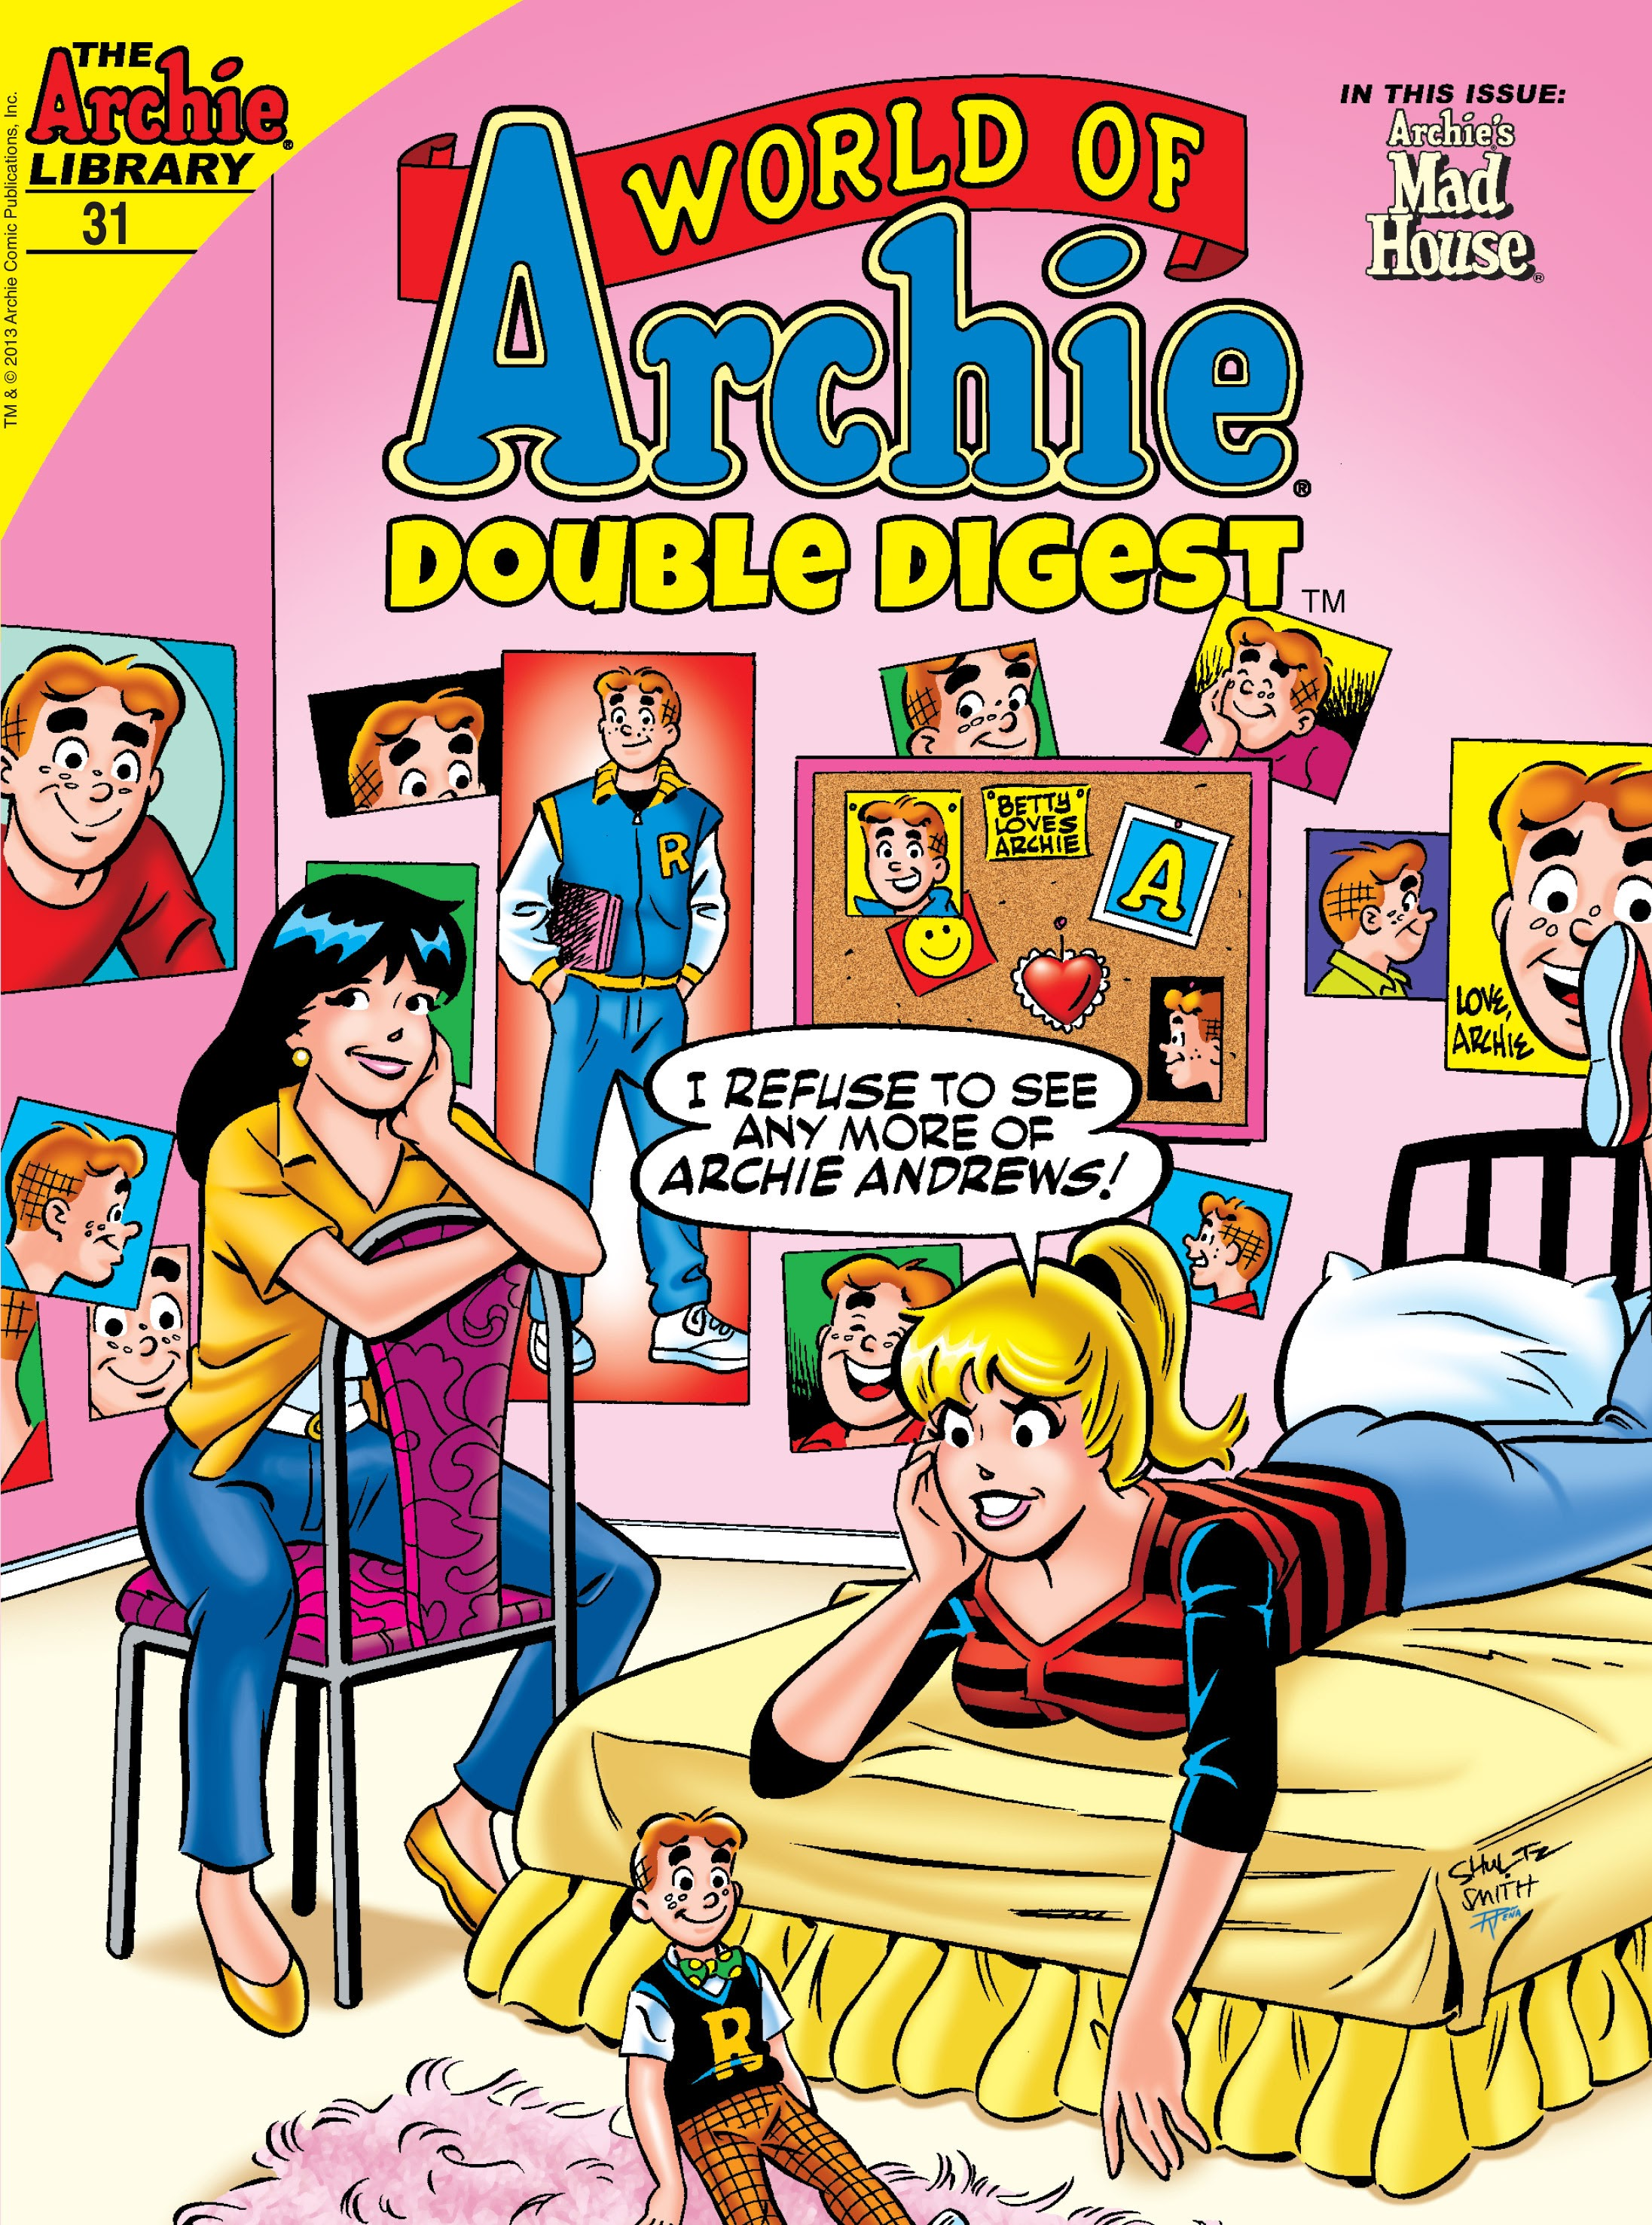 World of Archie Double Digest 31 Page 1